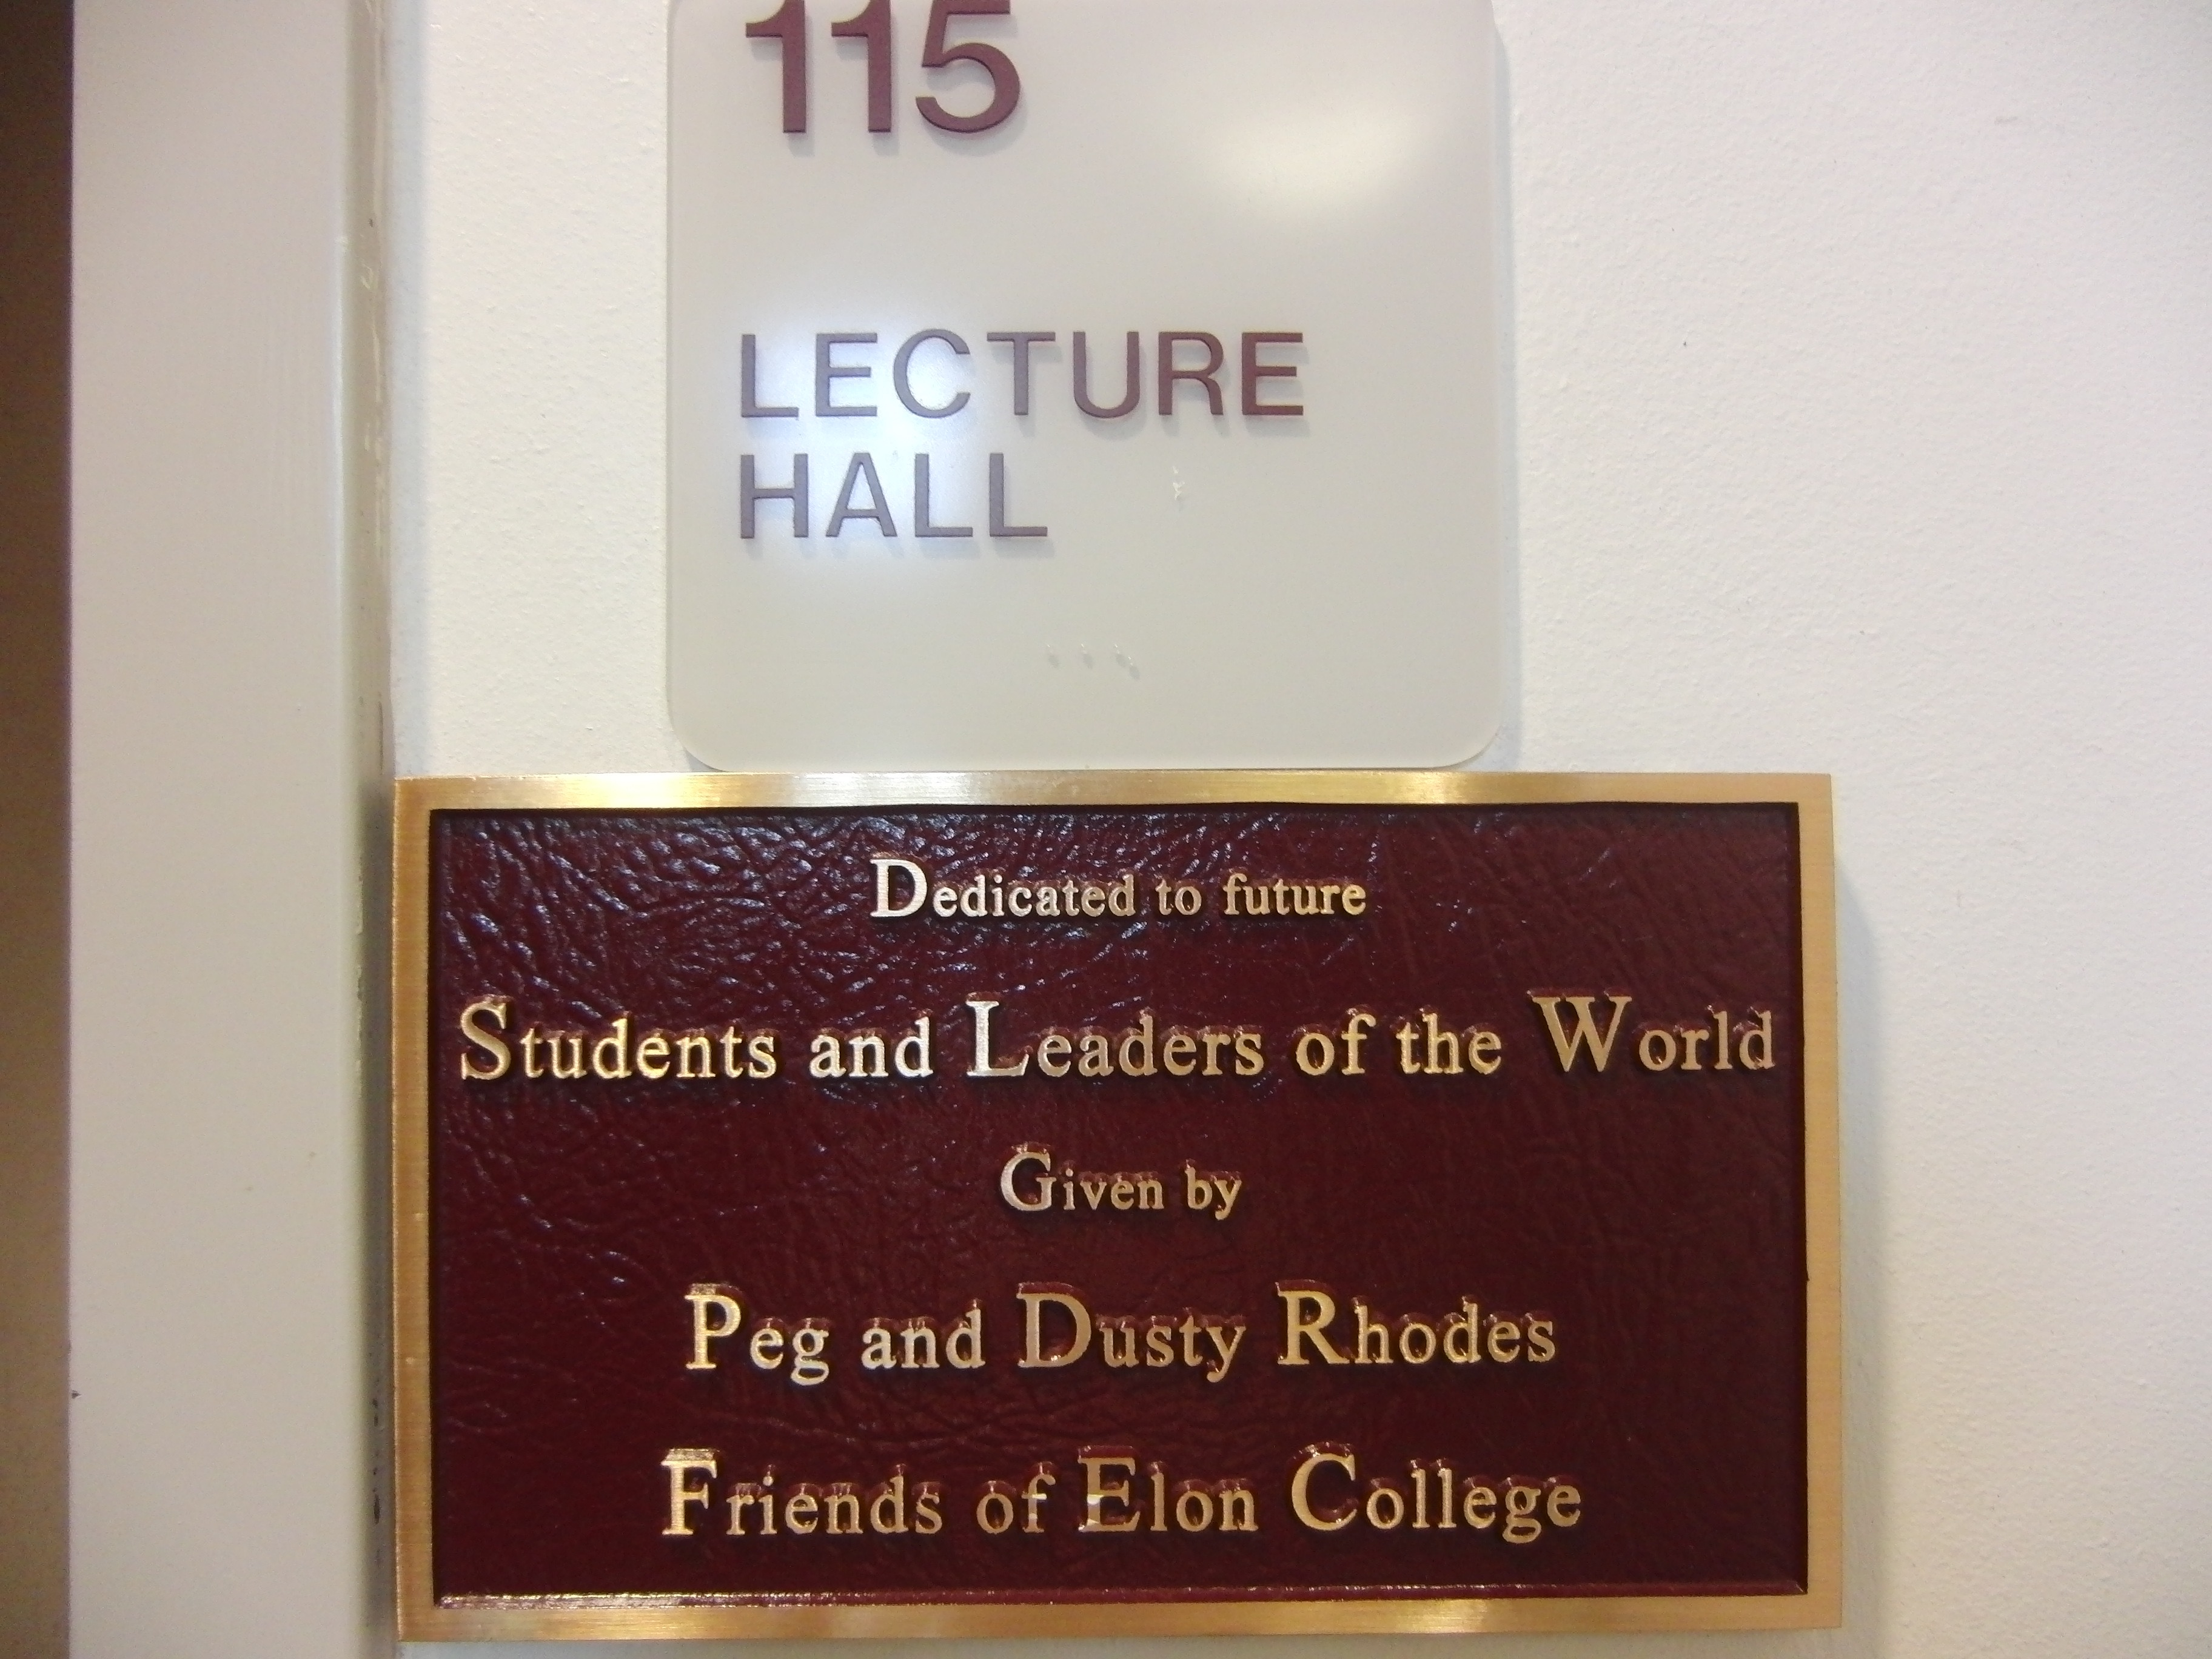 Photo of the McMichael 115 room number with dedication plaque installed below